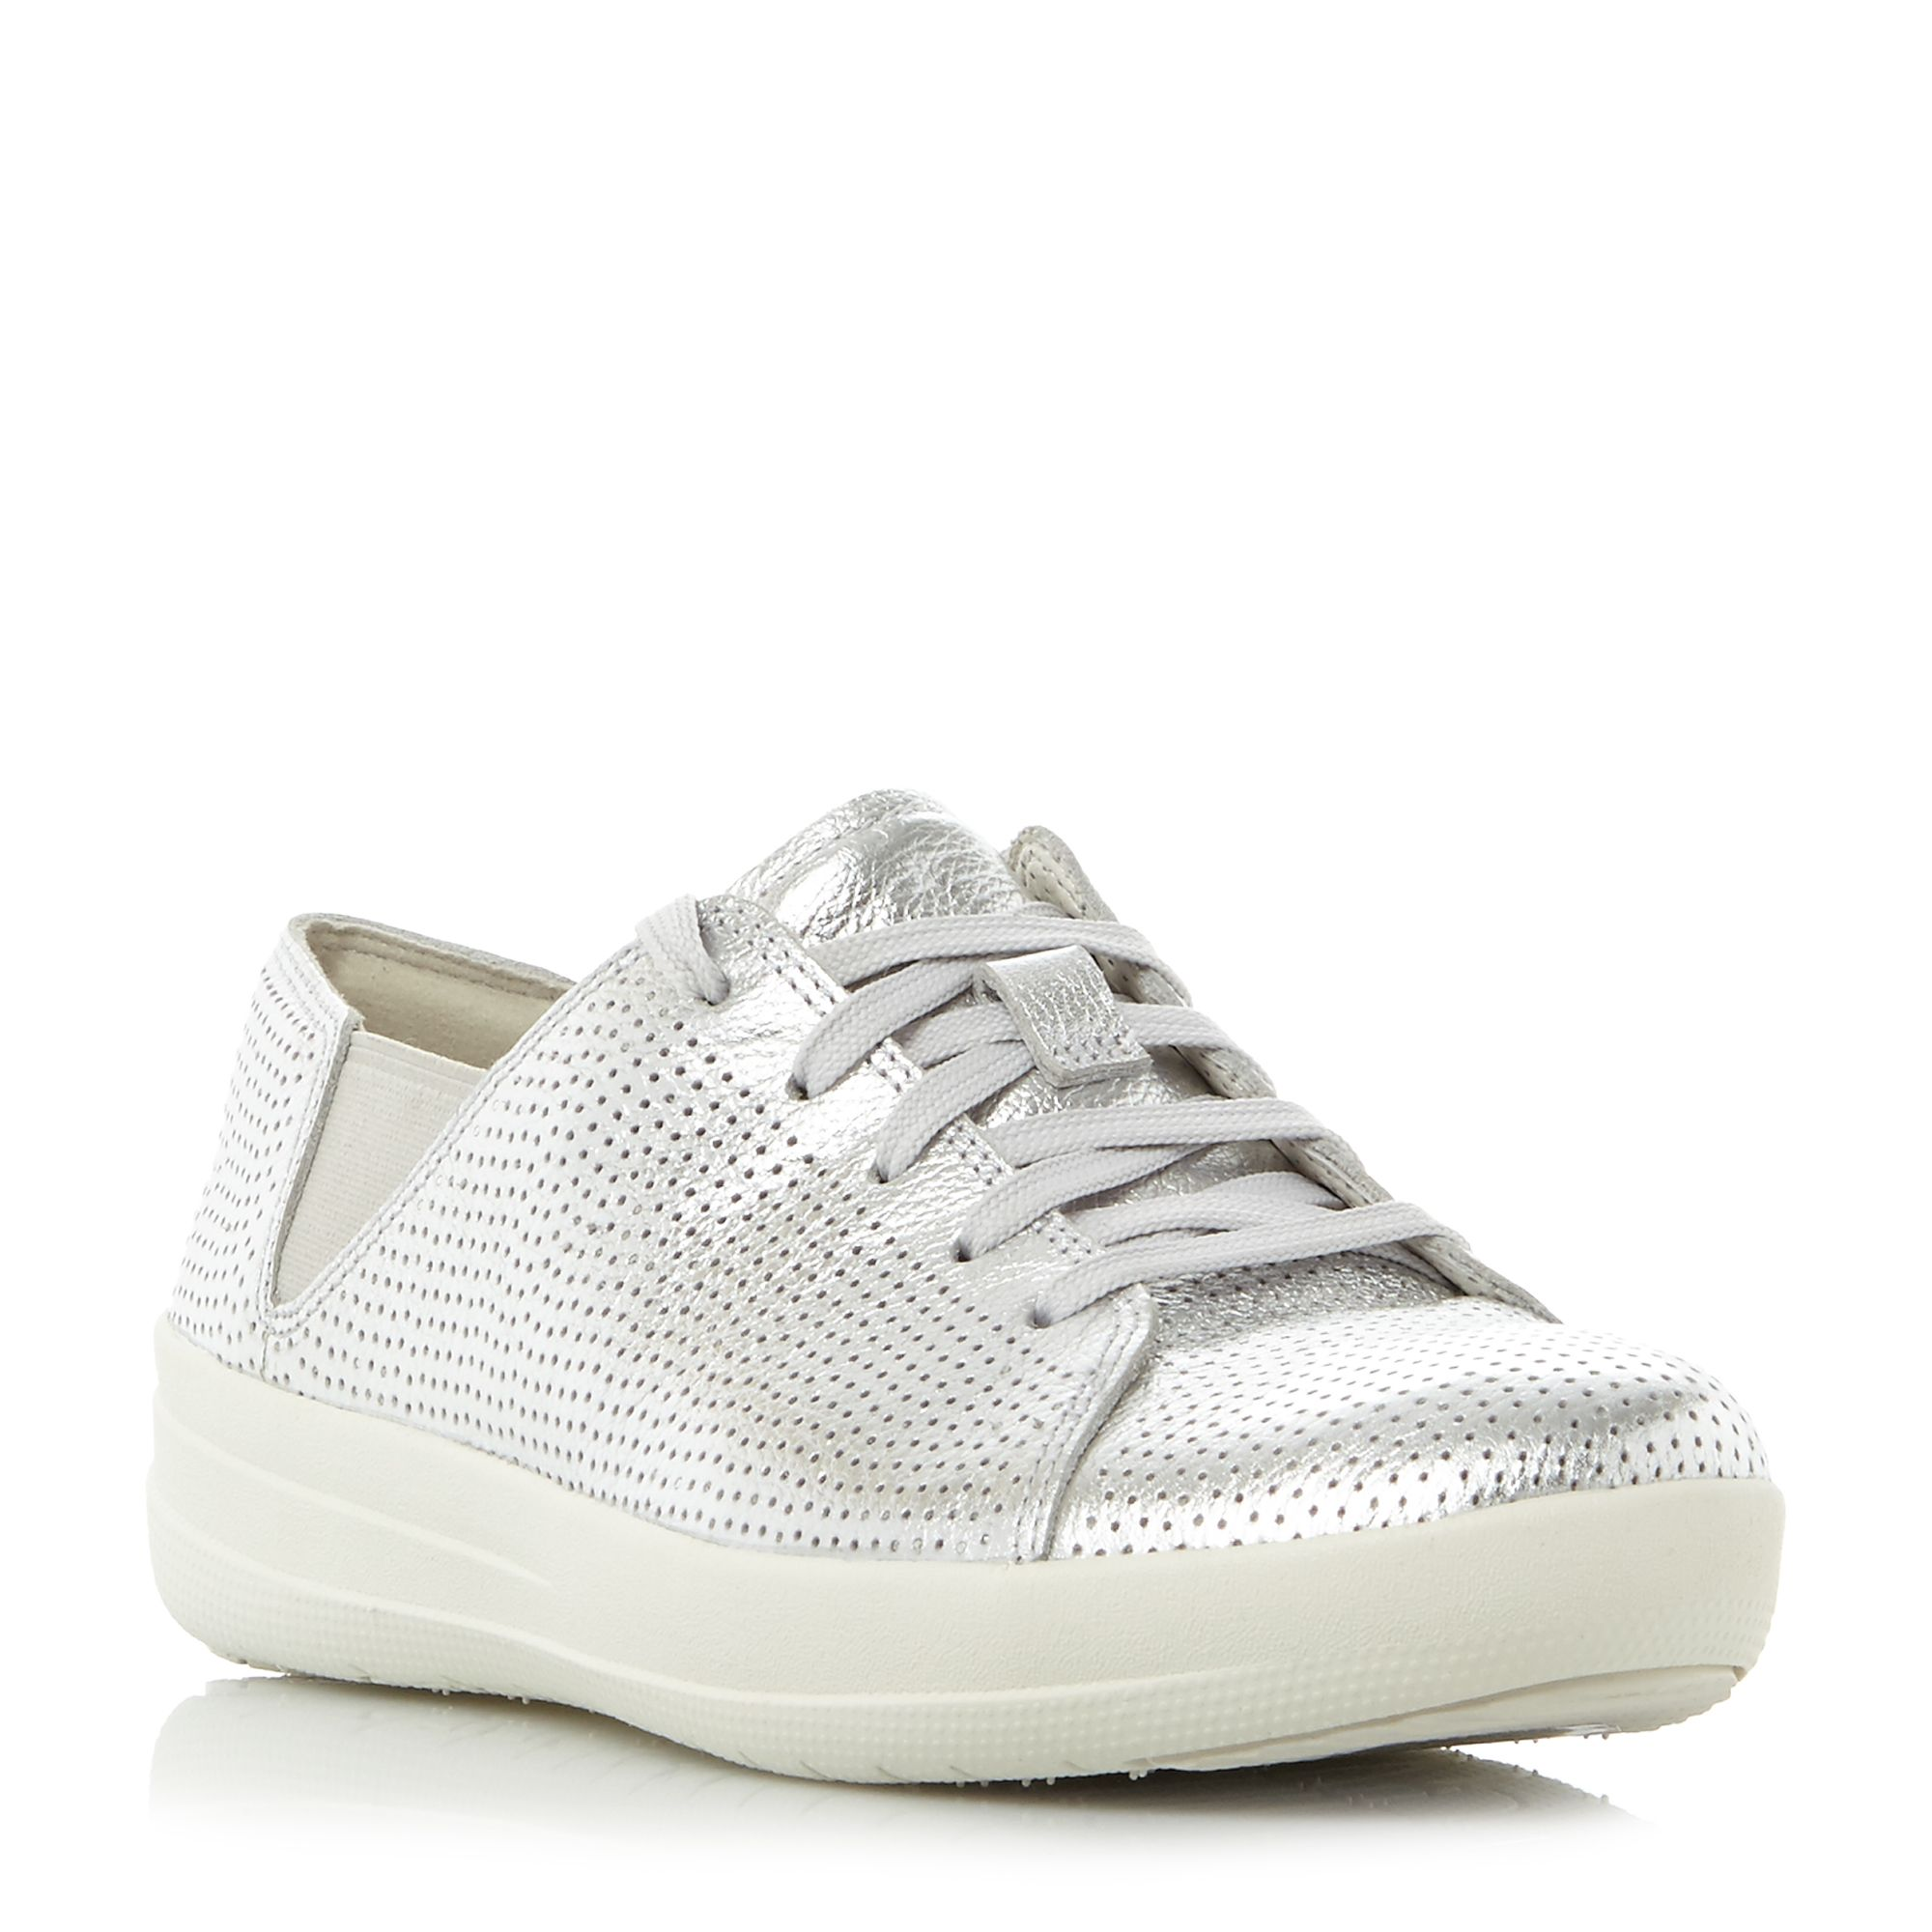 FitFlop F-sporty lace up perforated trainers, Silver